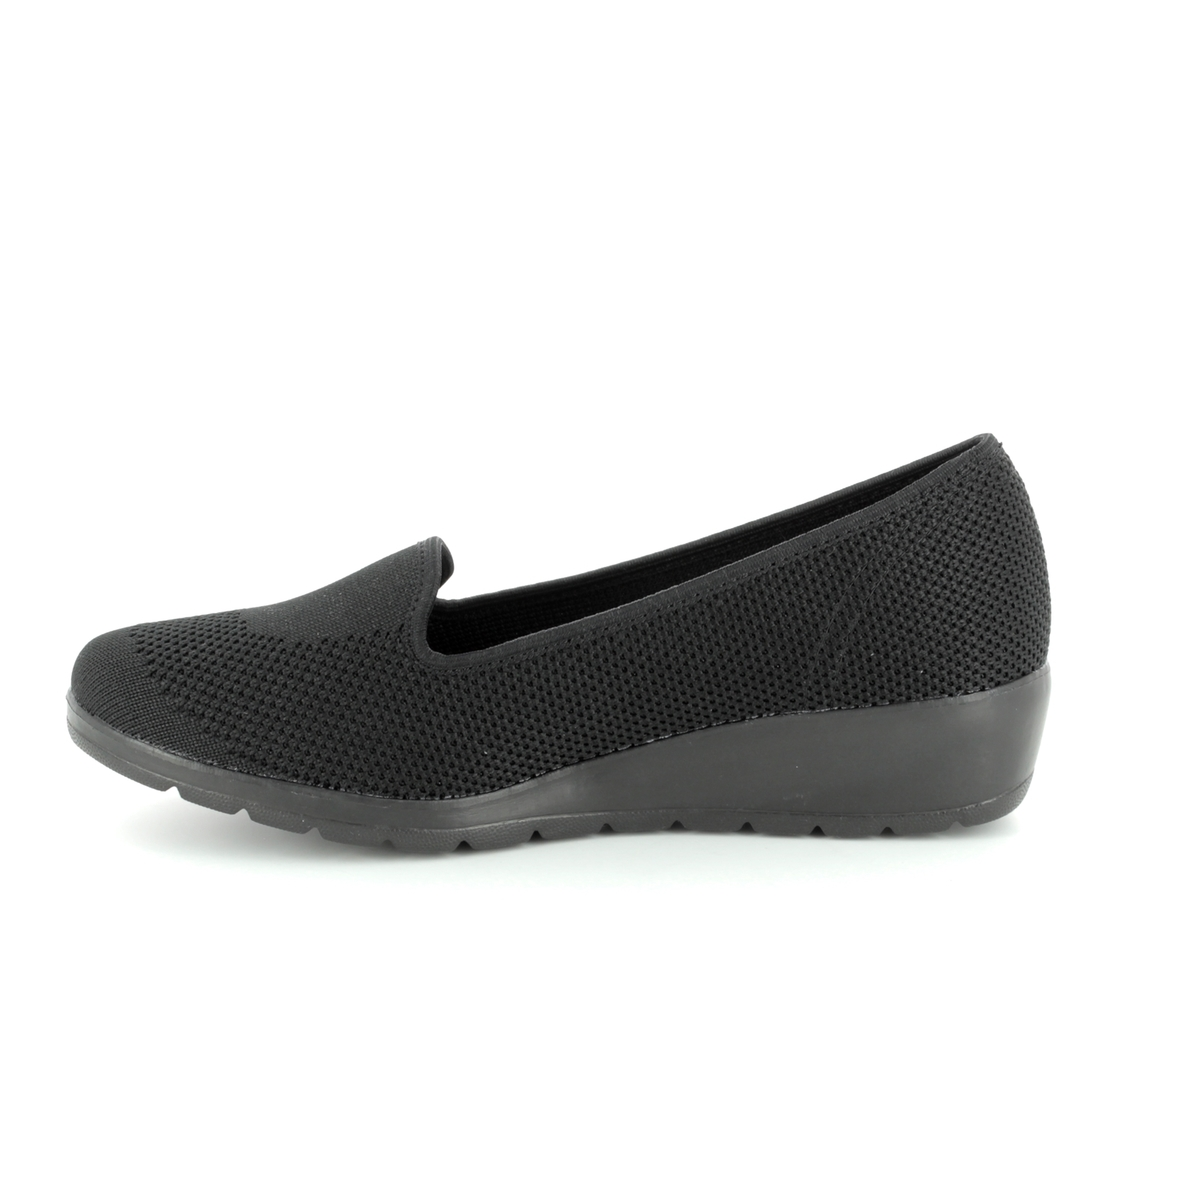 3da4f9129ea1 Heavenly Feet Wedge Shoes - Black - 8125 30 CARNATION